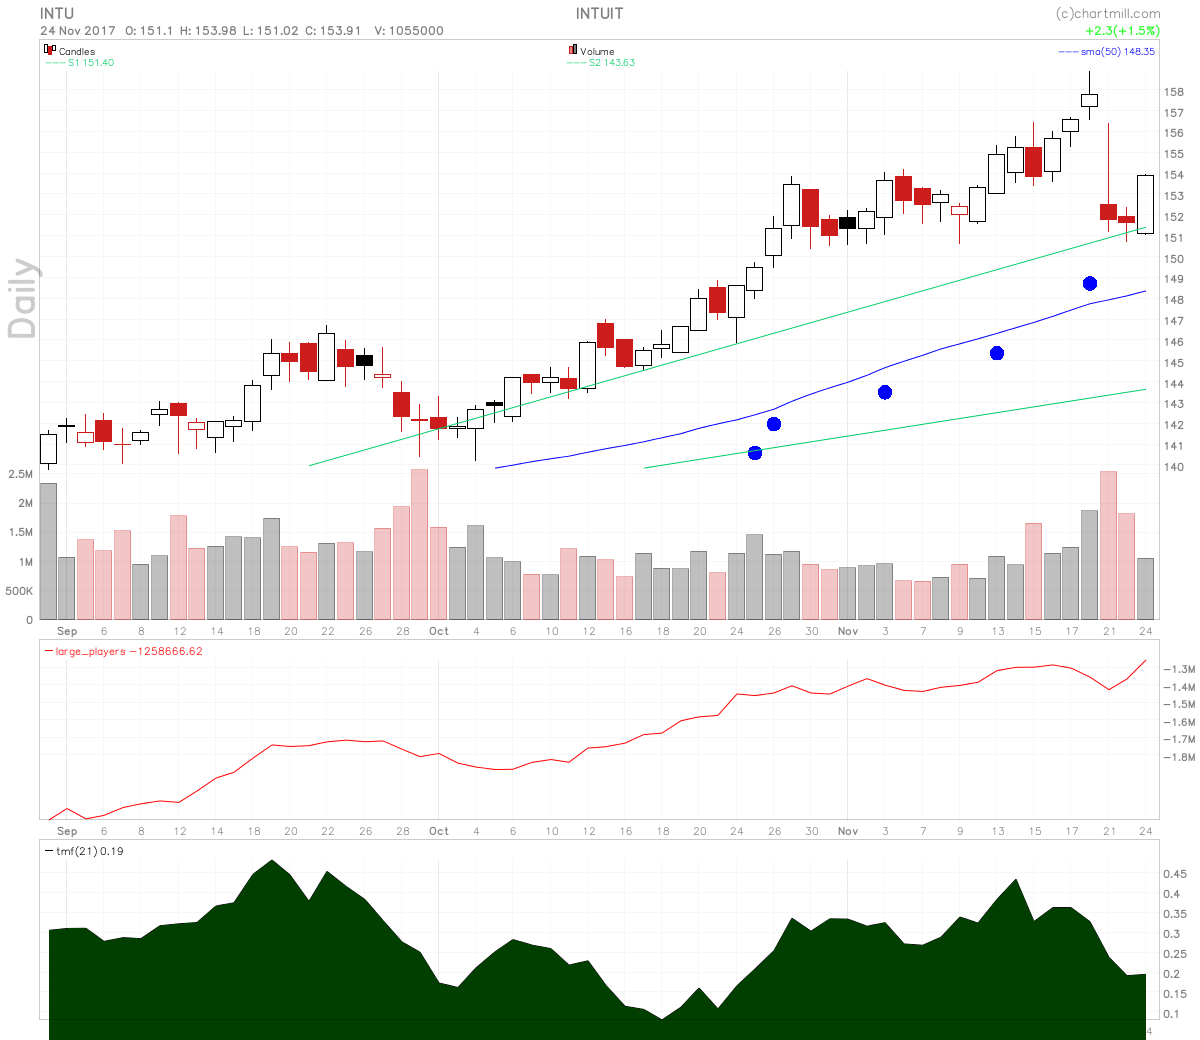 Intuit stock chart shows rising large players volume on a candle over candle reversal.